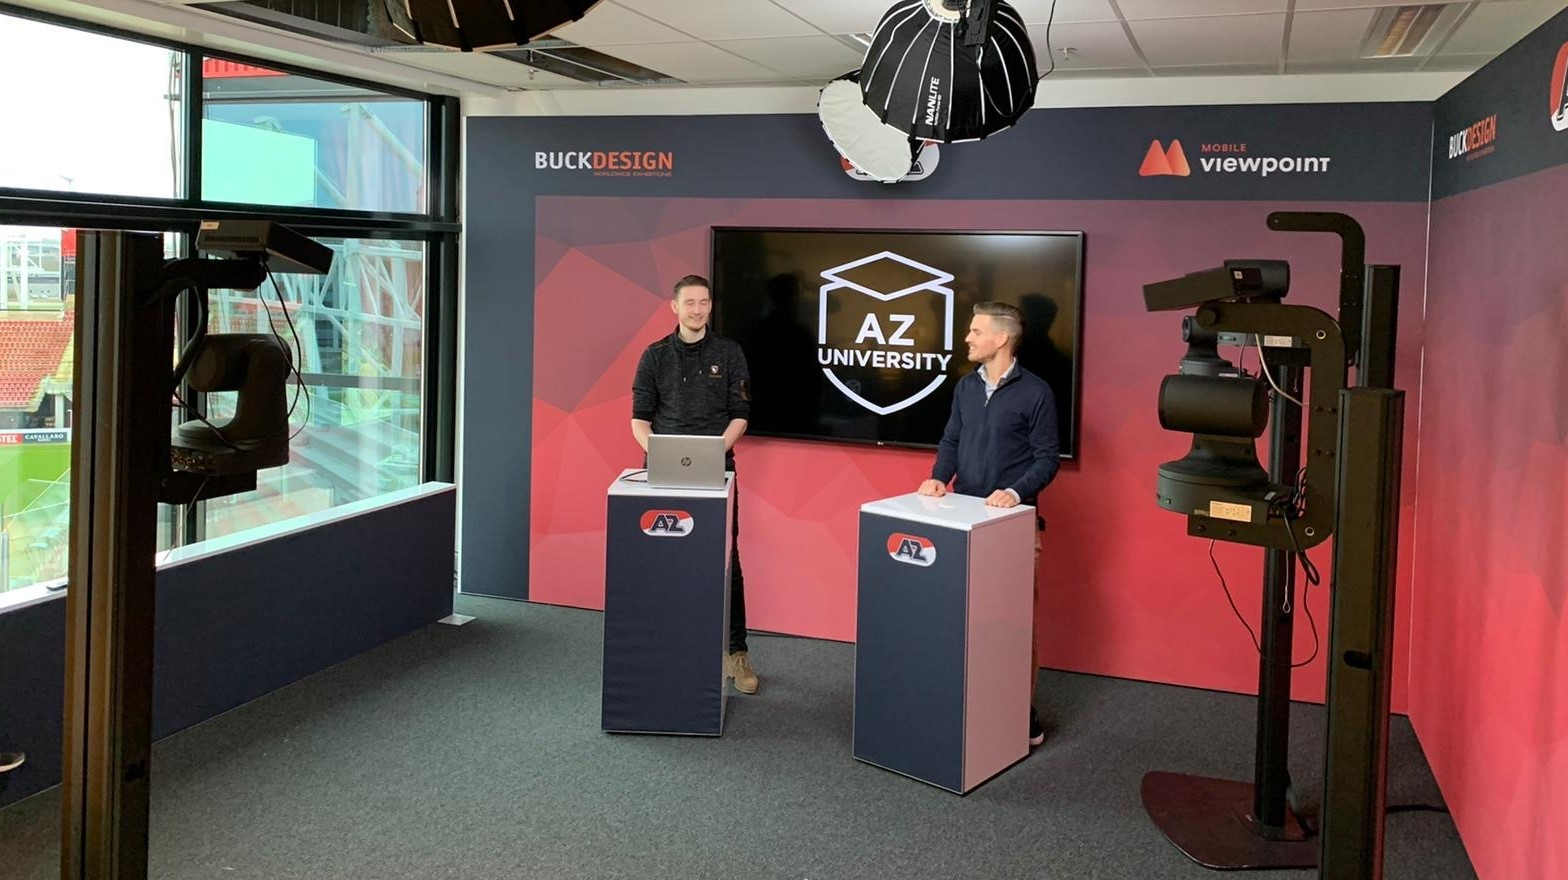 Success Story – Top Dutch Club AZ implement AI Studio for fan engagement